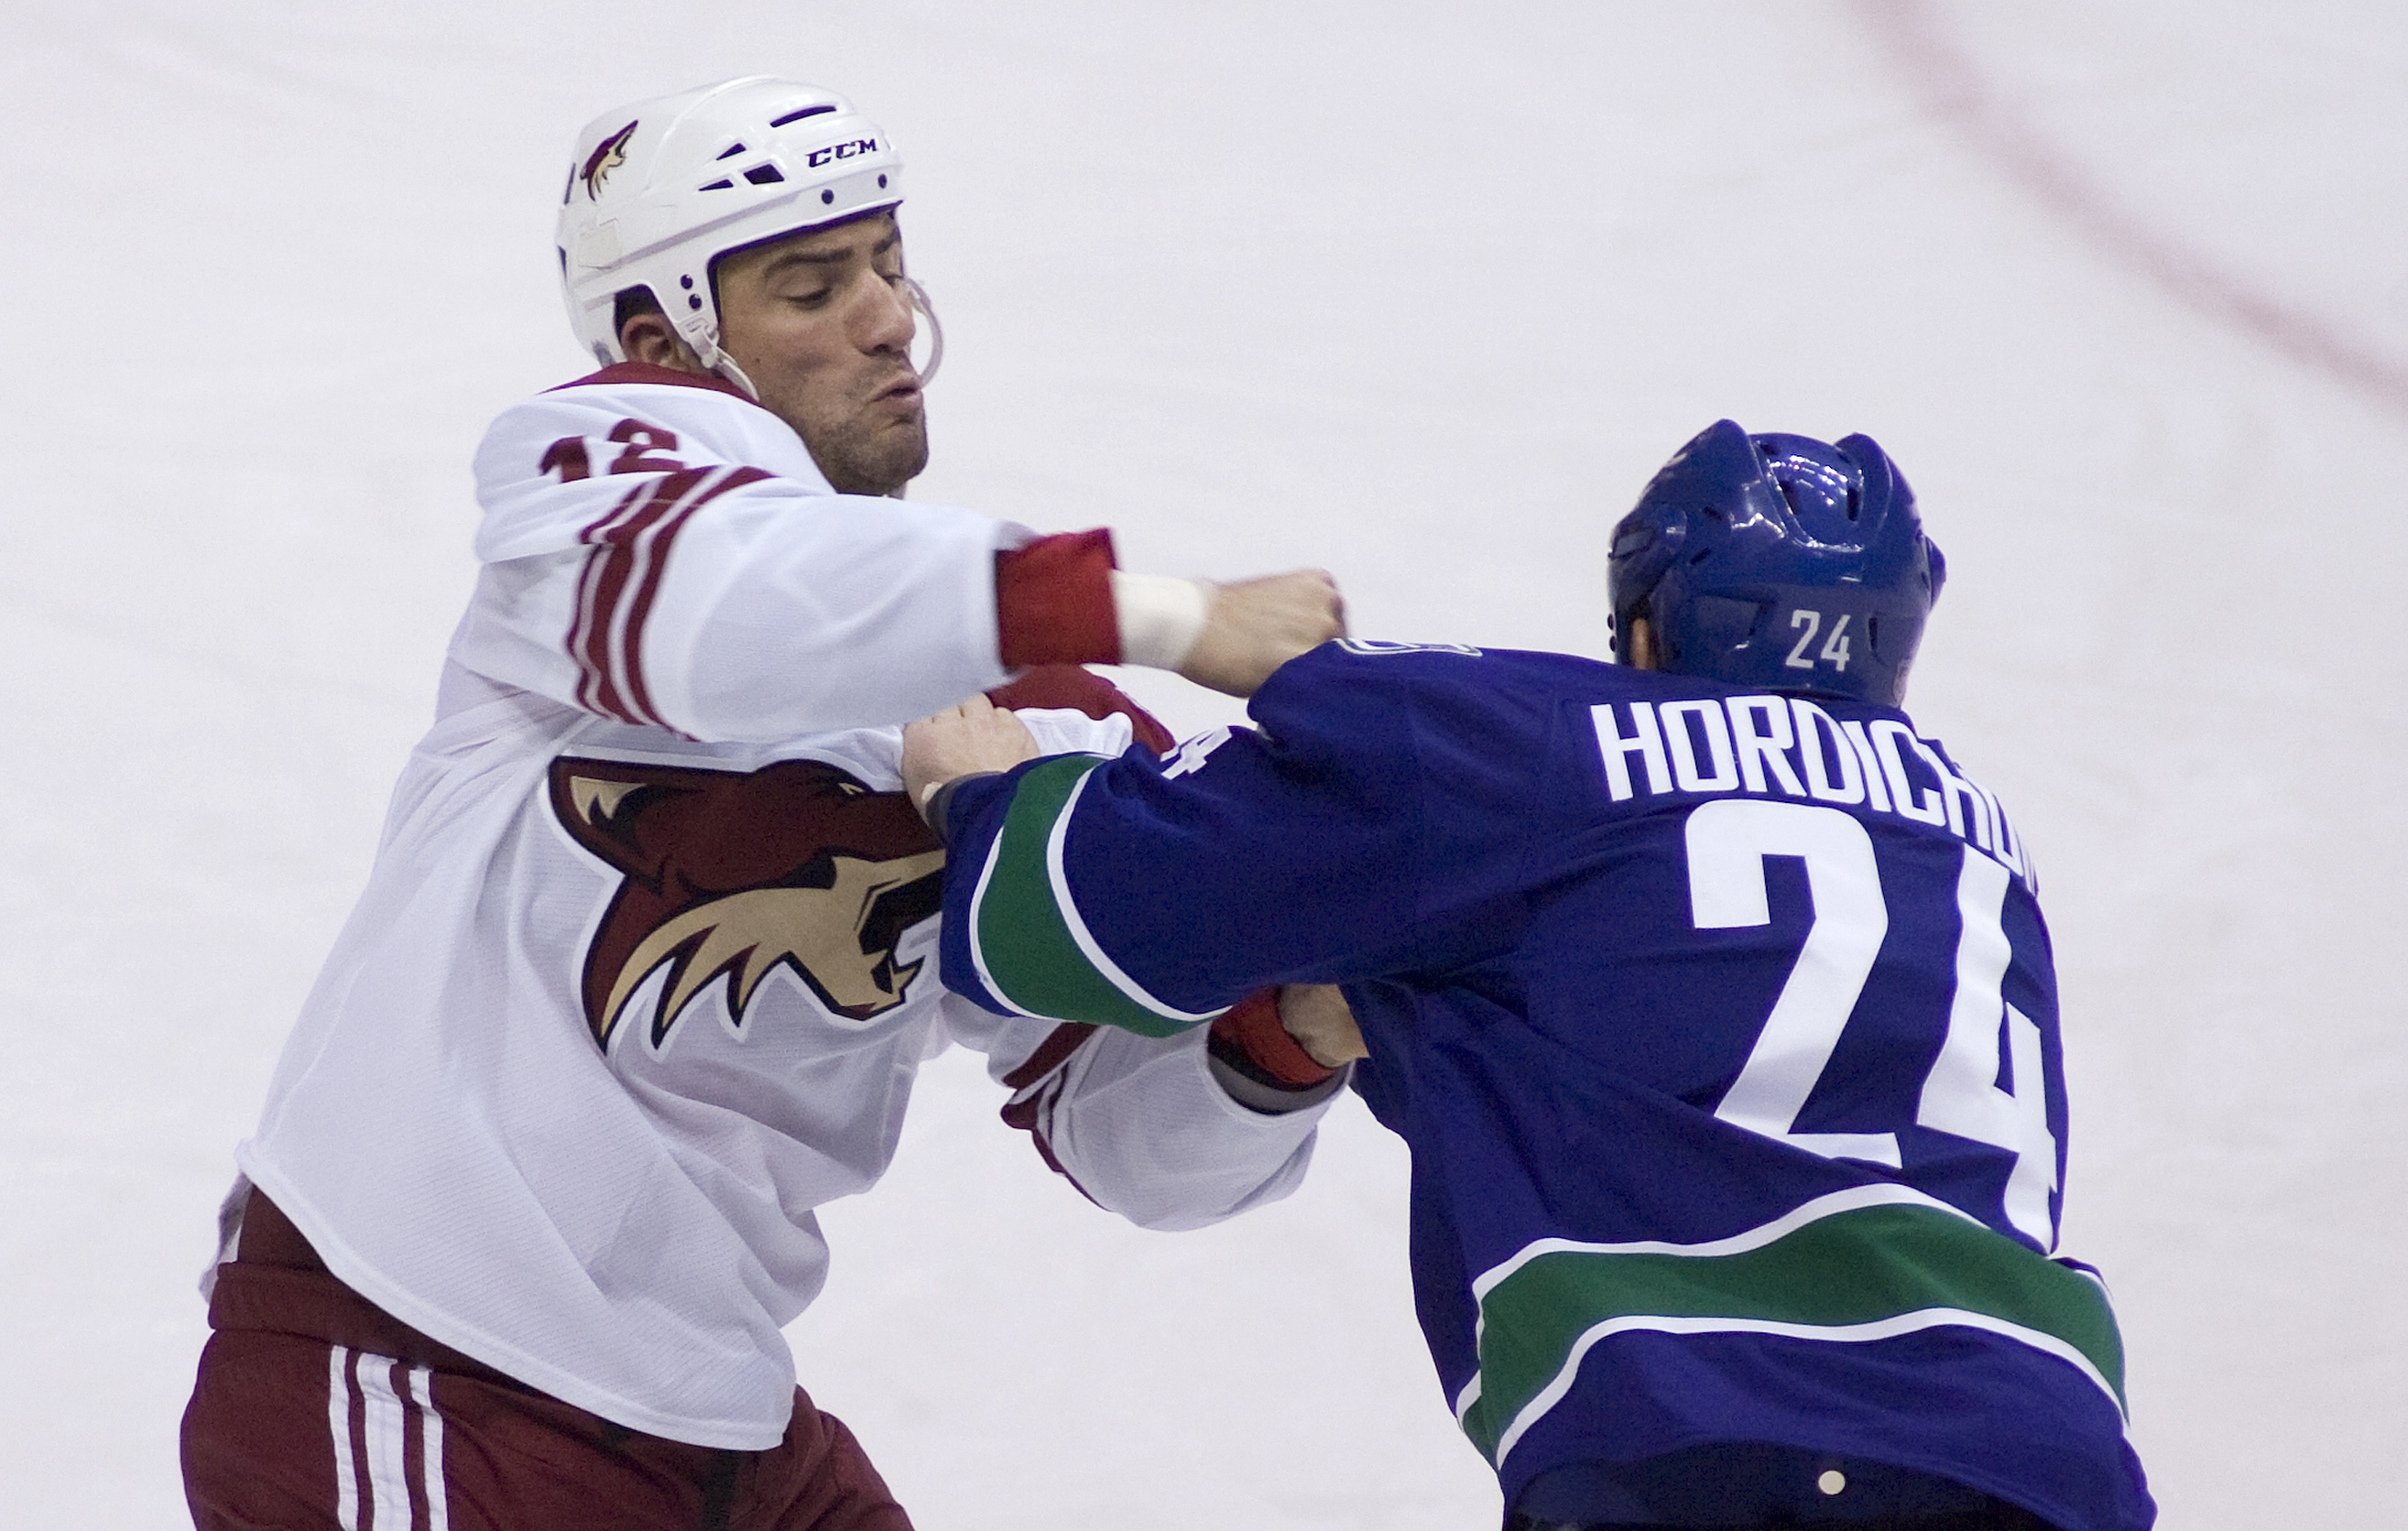 VANCOUVER, CANADA - JANUARY 7: Darcy Hordichuk #24 of the Vancouver Canucks and Paul Bissonnette #12 of the Phoenix Coyotes exchange punches during a fight in the third period of NHL action on January 07, 2010 at General Motors Place in Vancouver, British